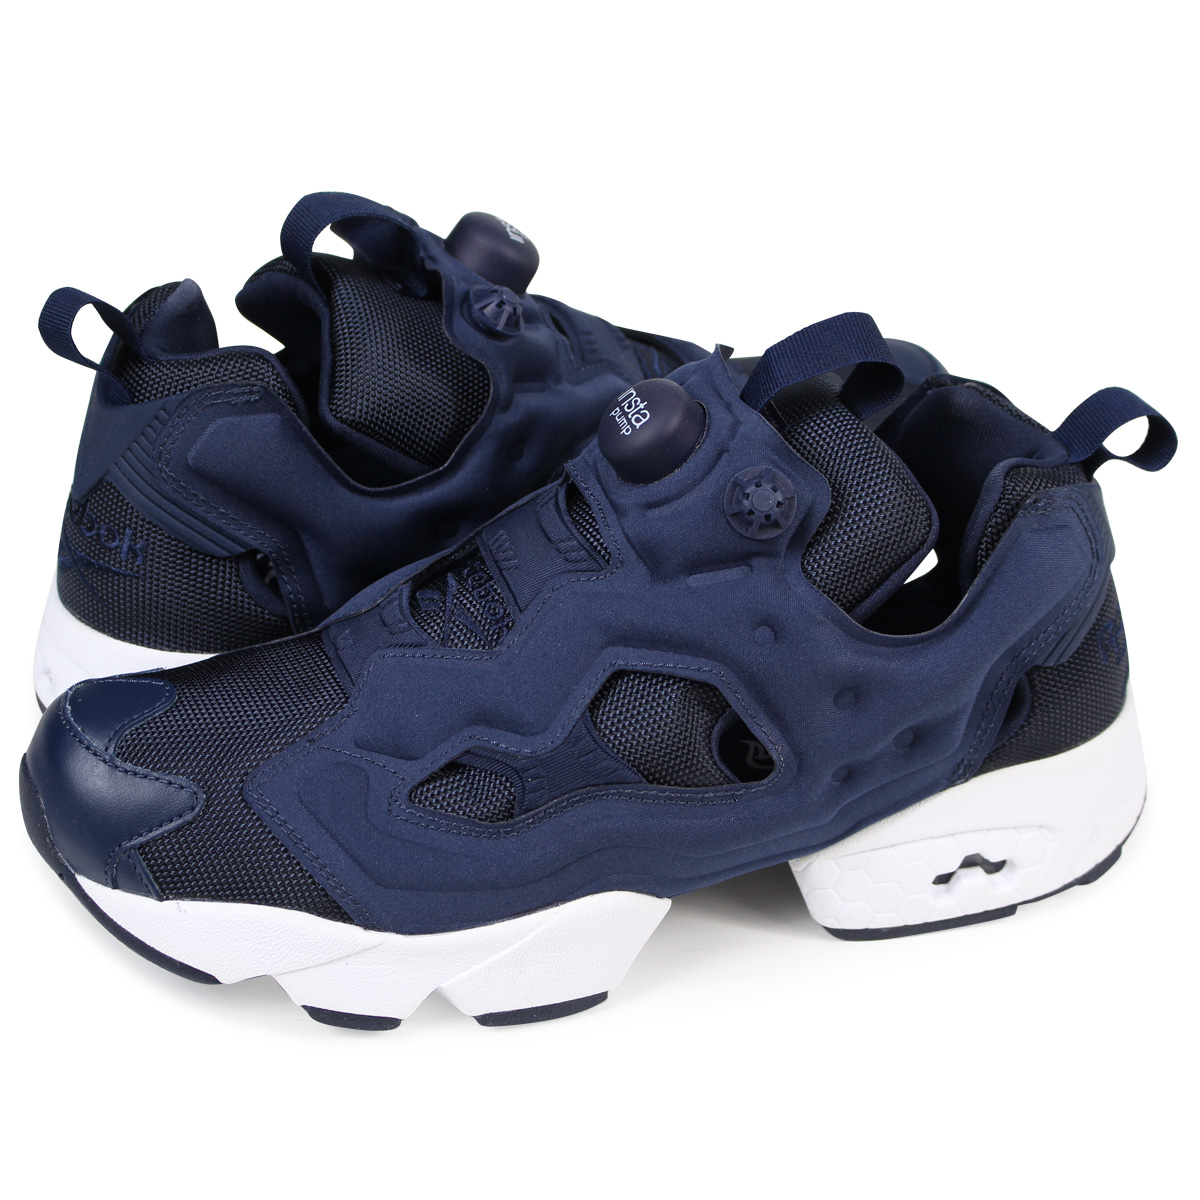 Reebok Reebok INSTA PUMP FURY OG sneaker insta pump fury original mesh  leather men s women s M48559 white black unisex  7   17 new stock   regular  5c6acc84a